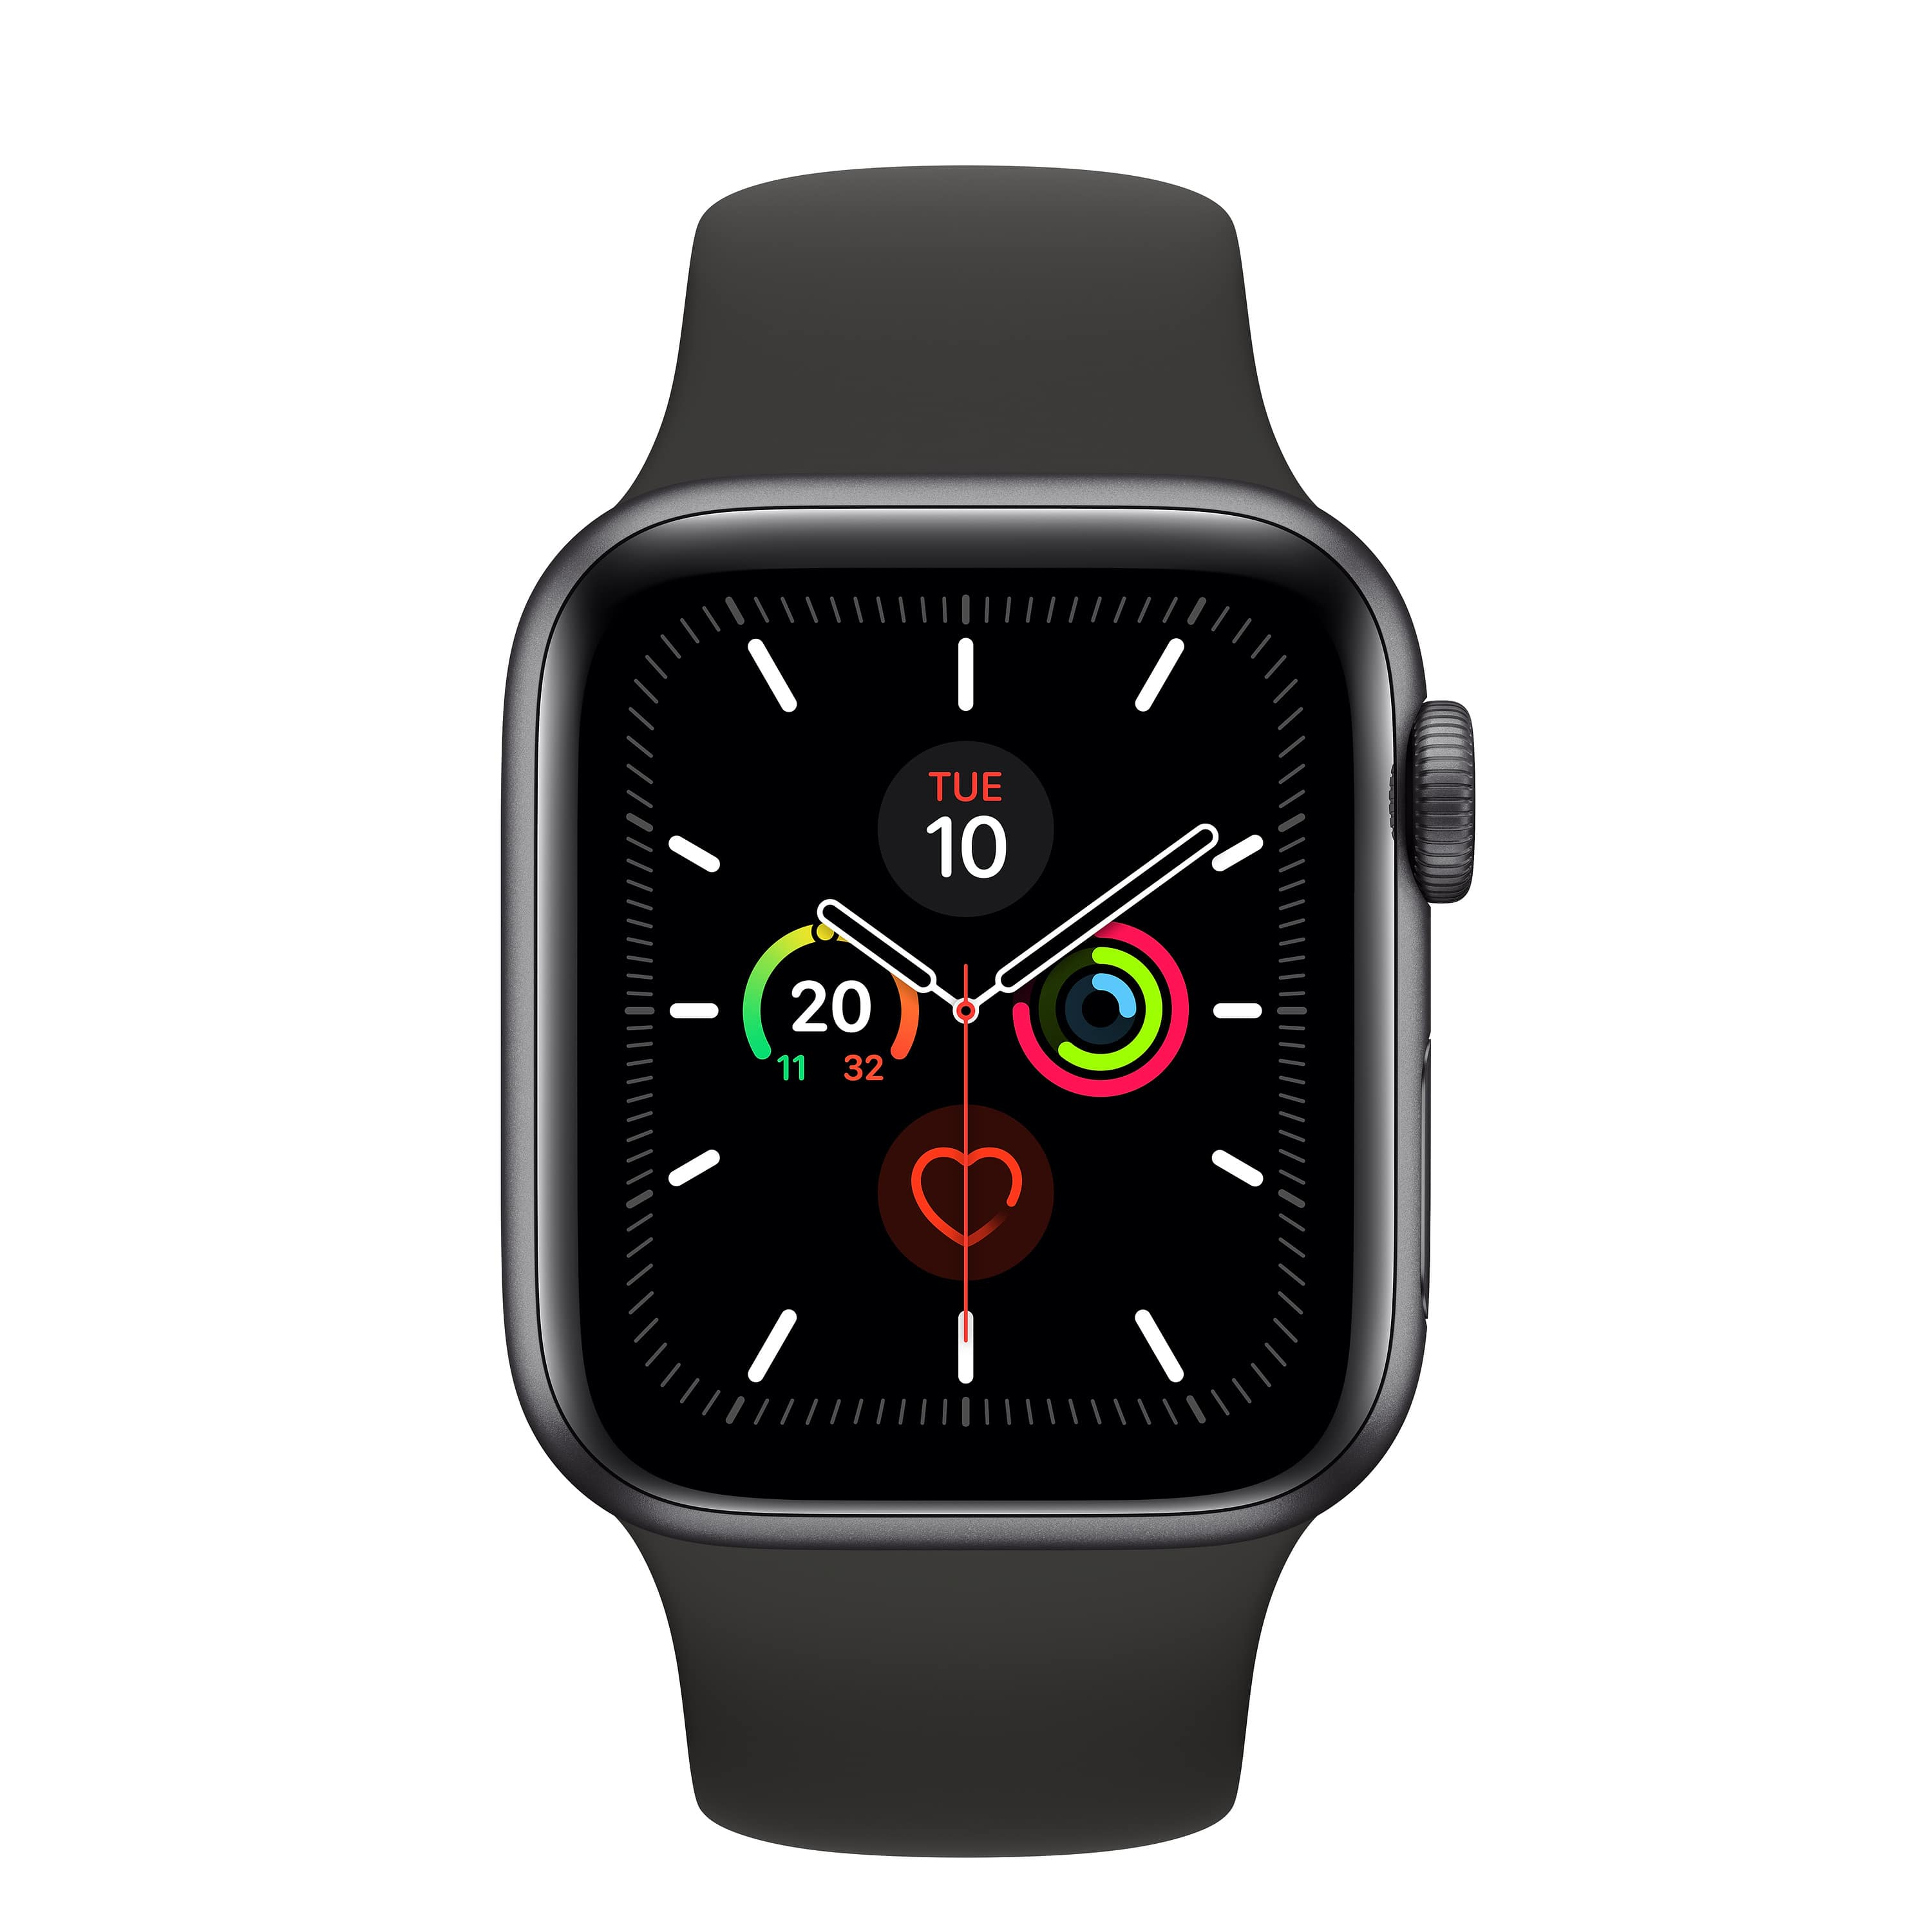 Apple Watch Watch Series 5 für 549,00 Euro